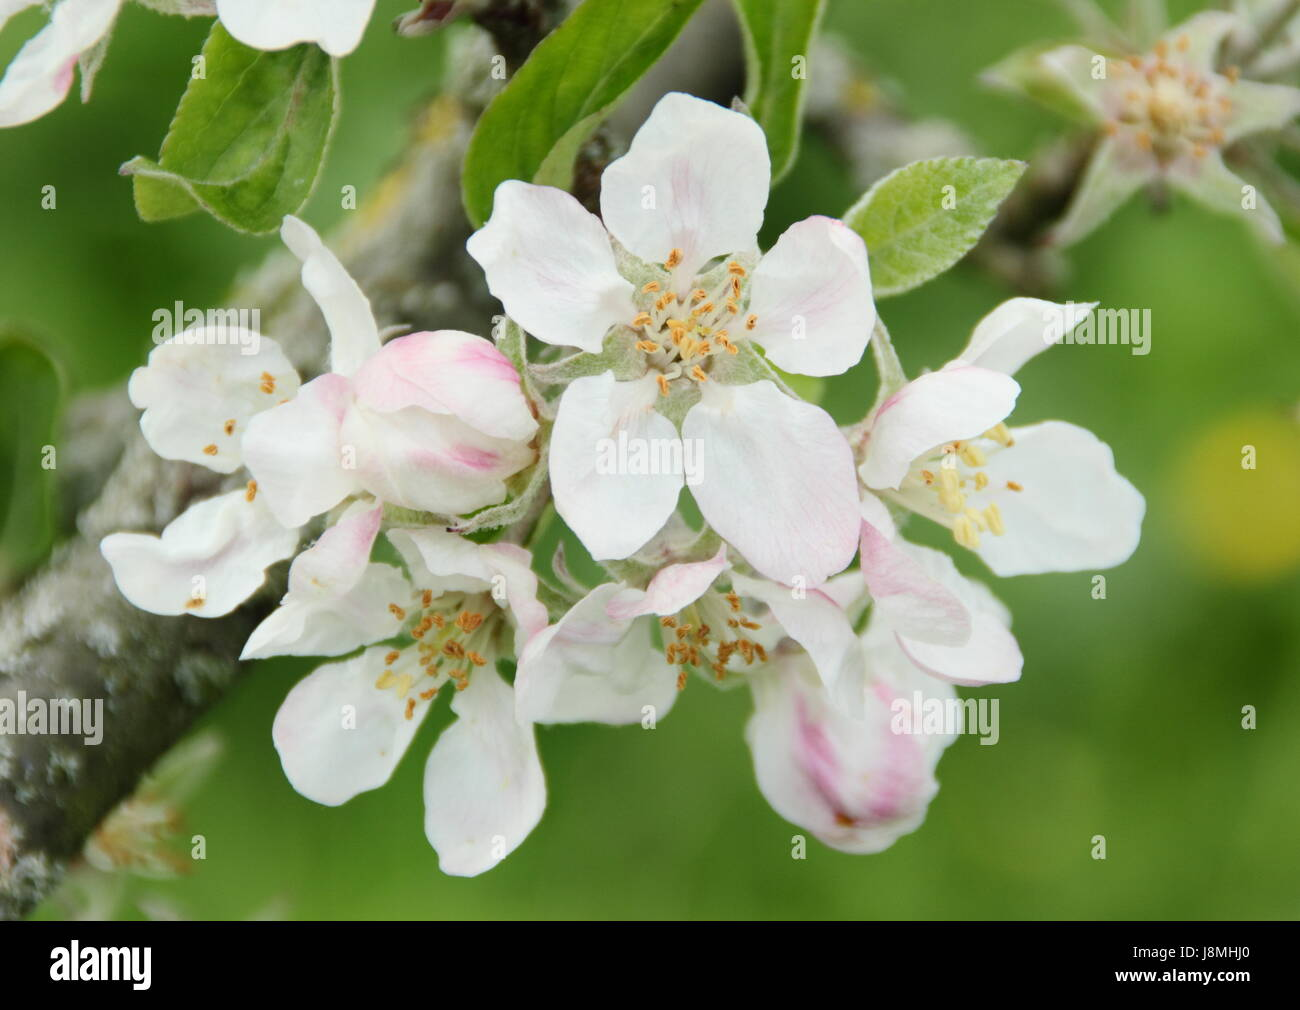 Malus domestica ' Devonshire Quarrenden' apple tree blossom in full bloom in an English heritage orchard - Stock Image